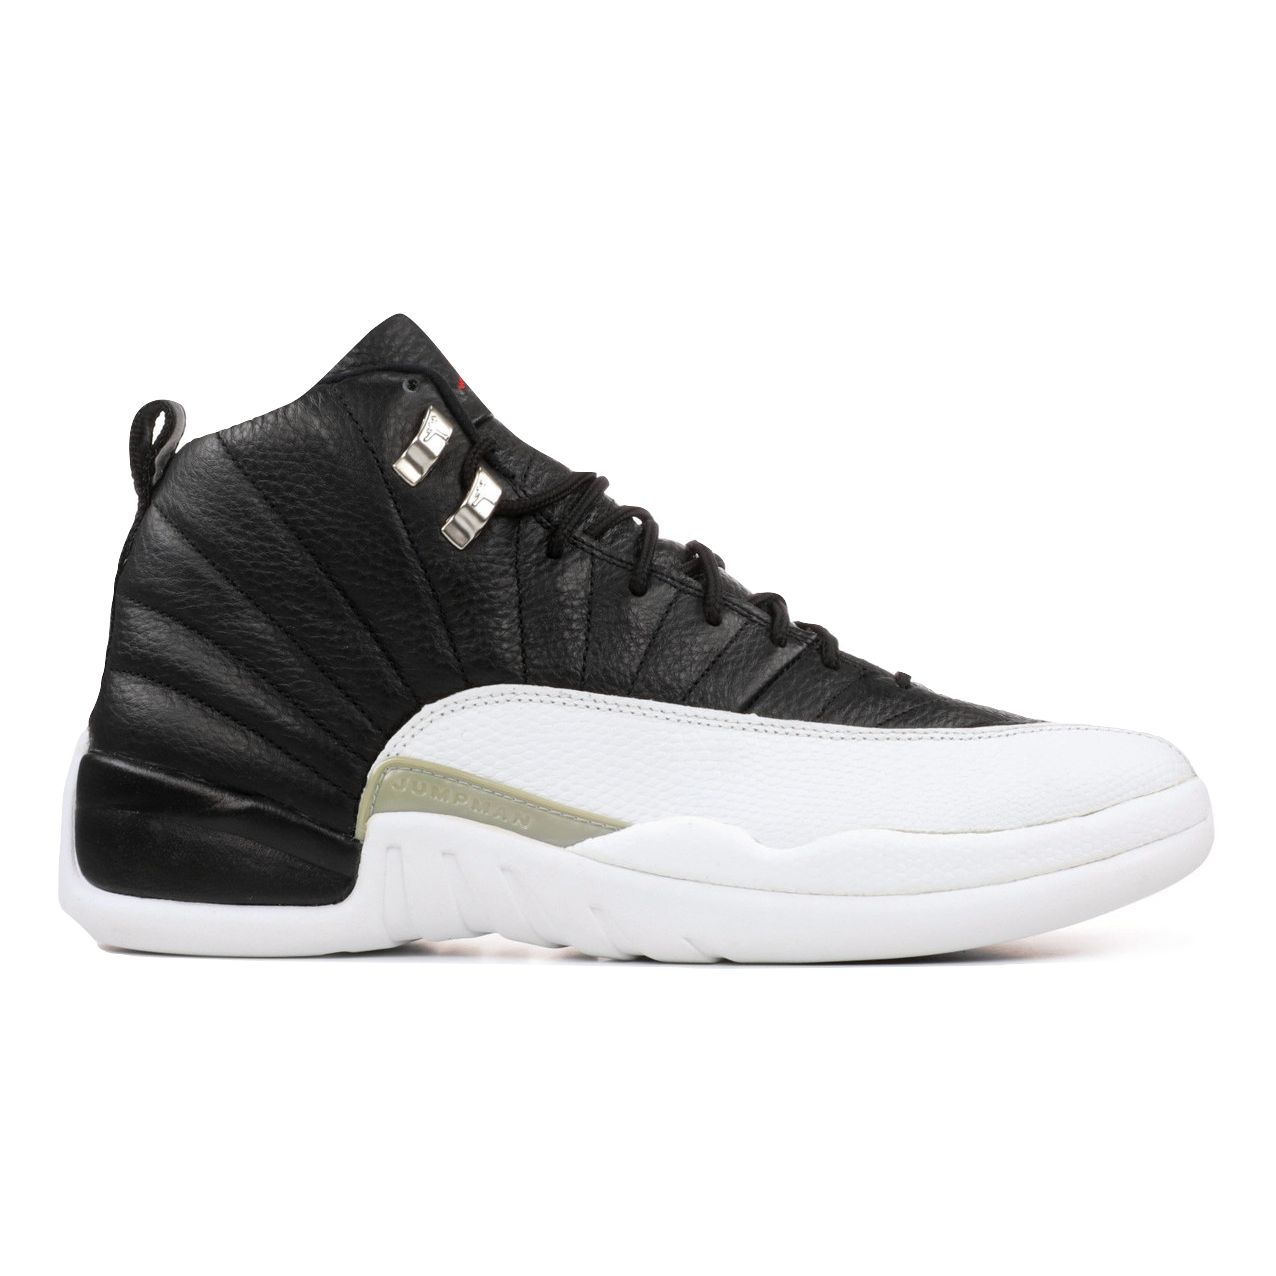 Air Jordan 12 Retro - Playoff 2004